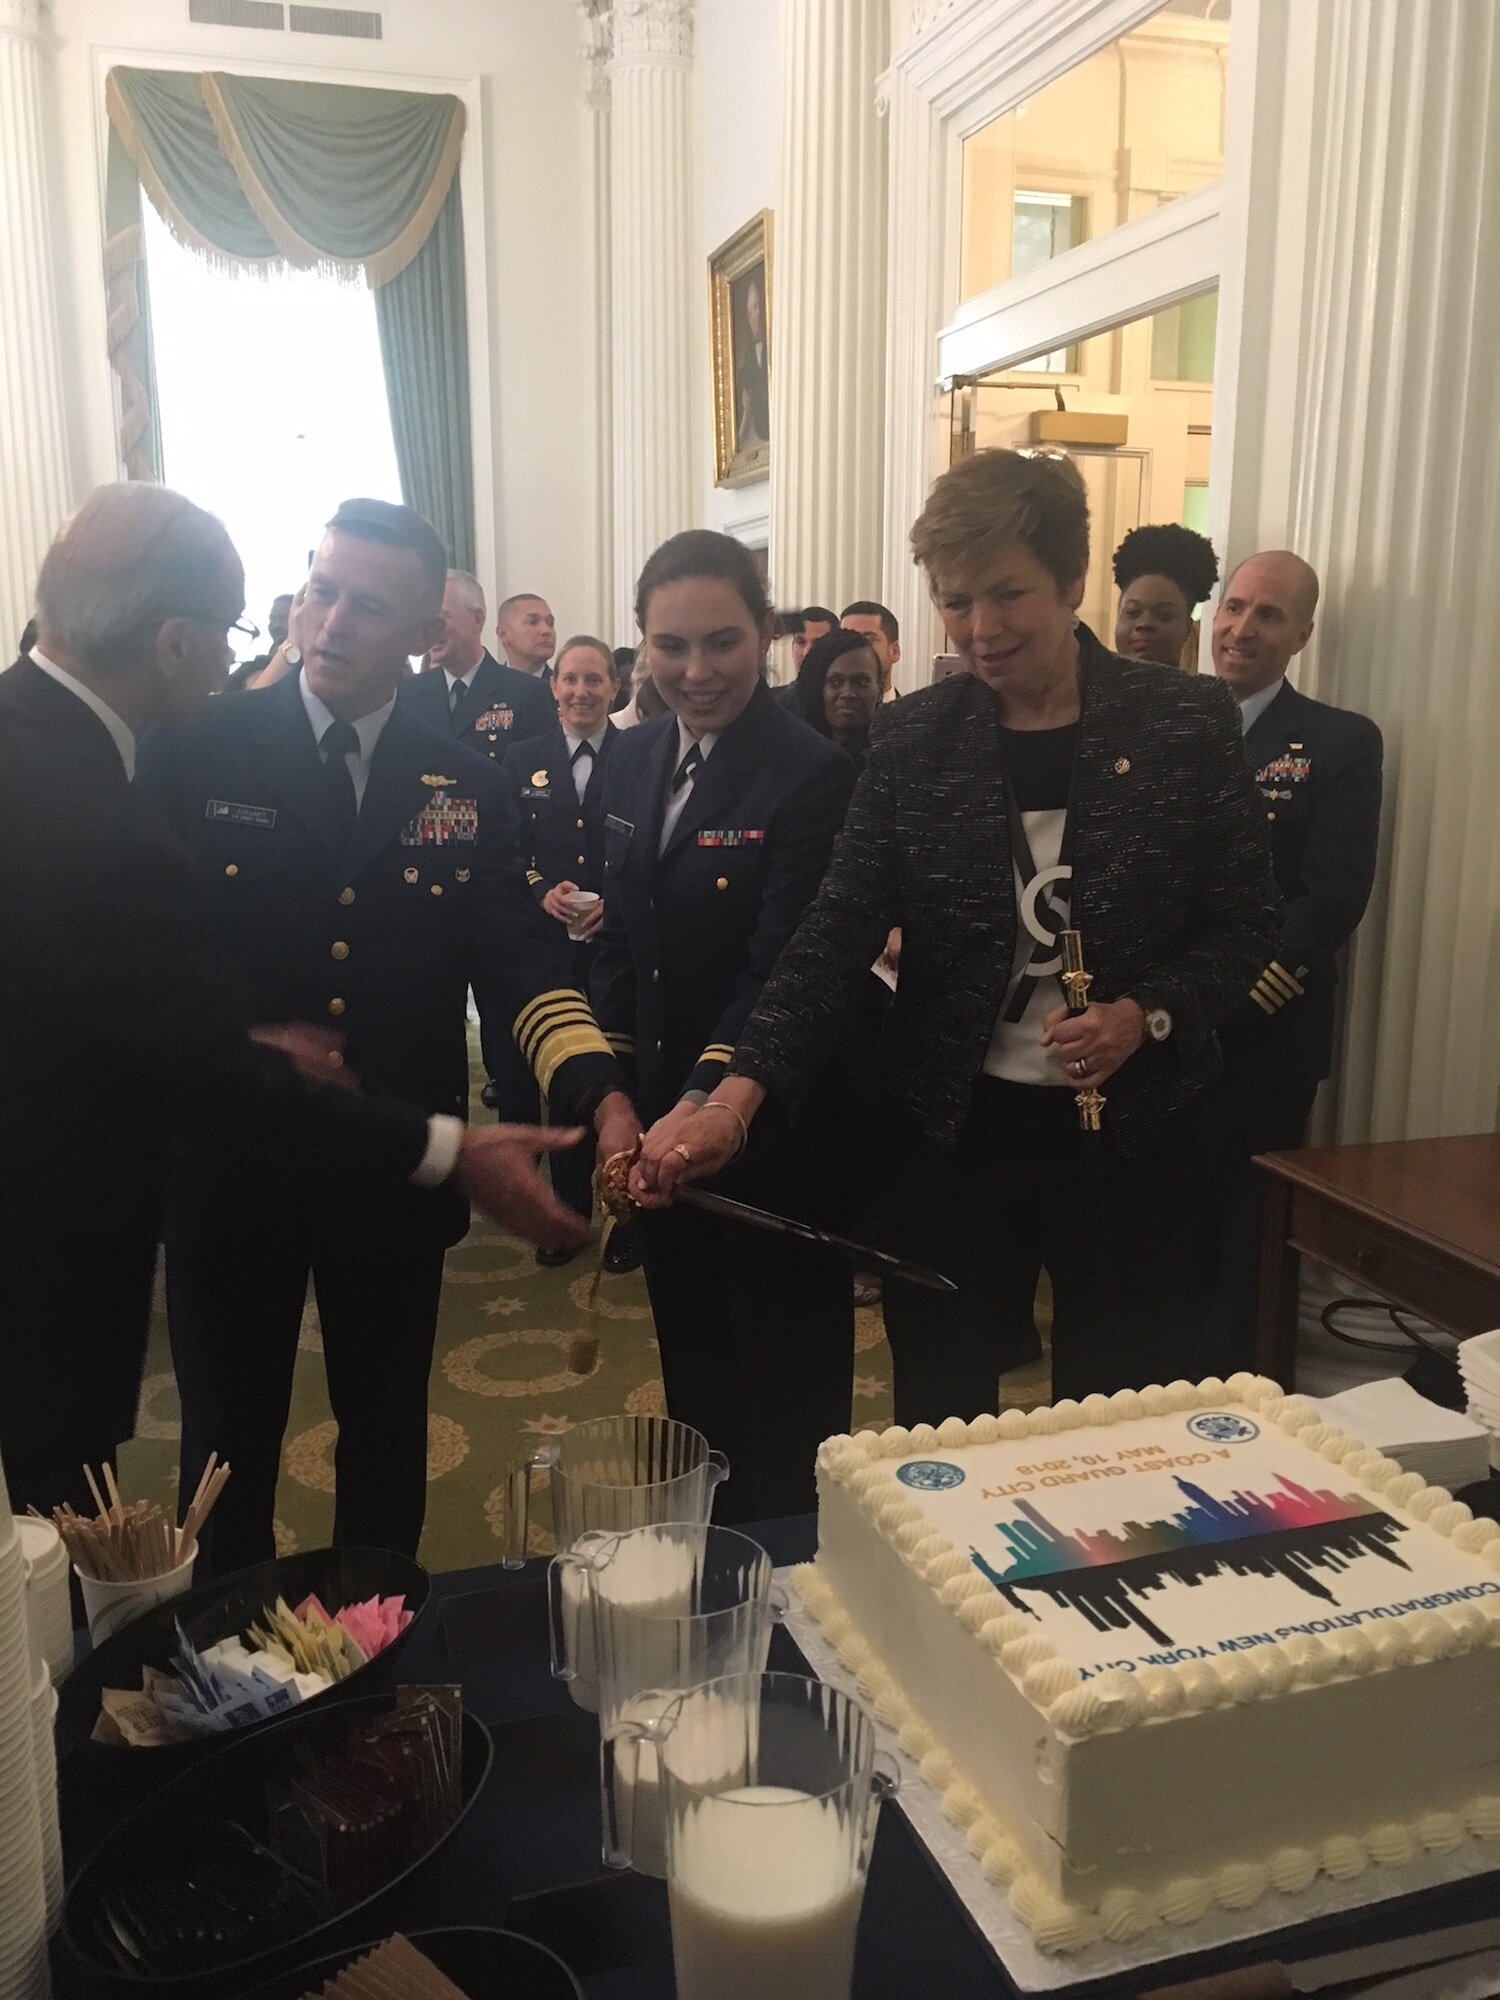 New York City was proclaimed an official Coast Guard City and we were pleased to play a part in that process, as well as at the ceremony to celebrate it.